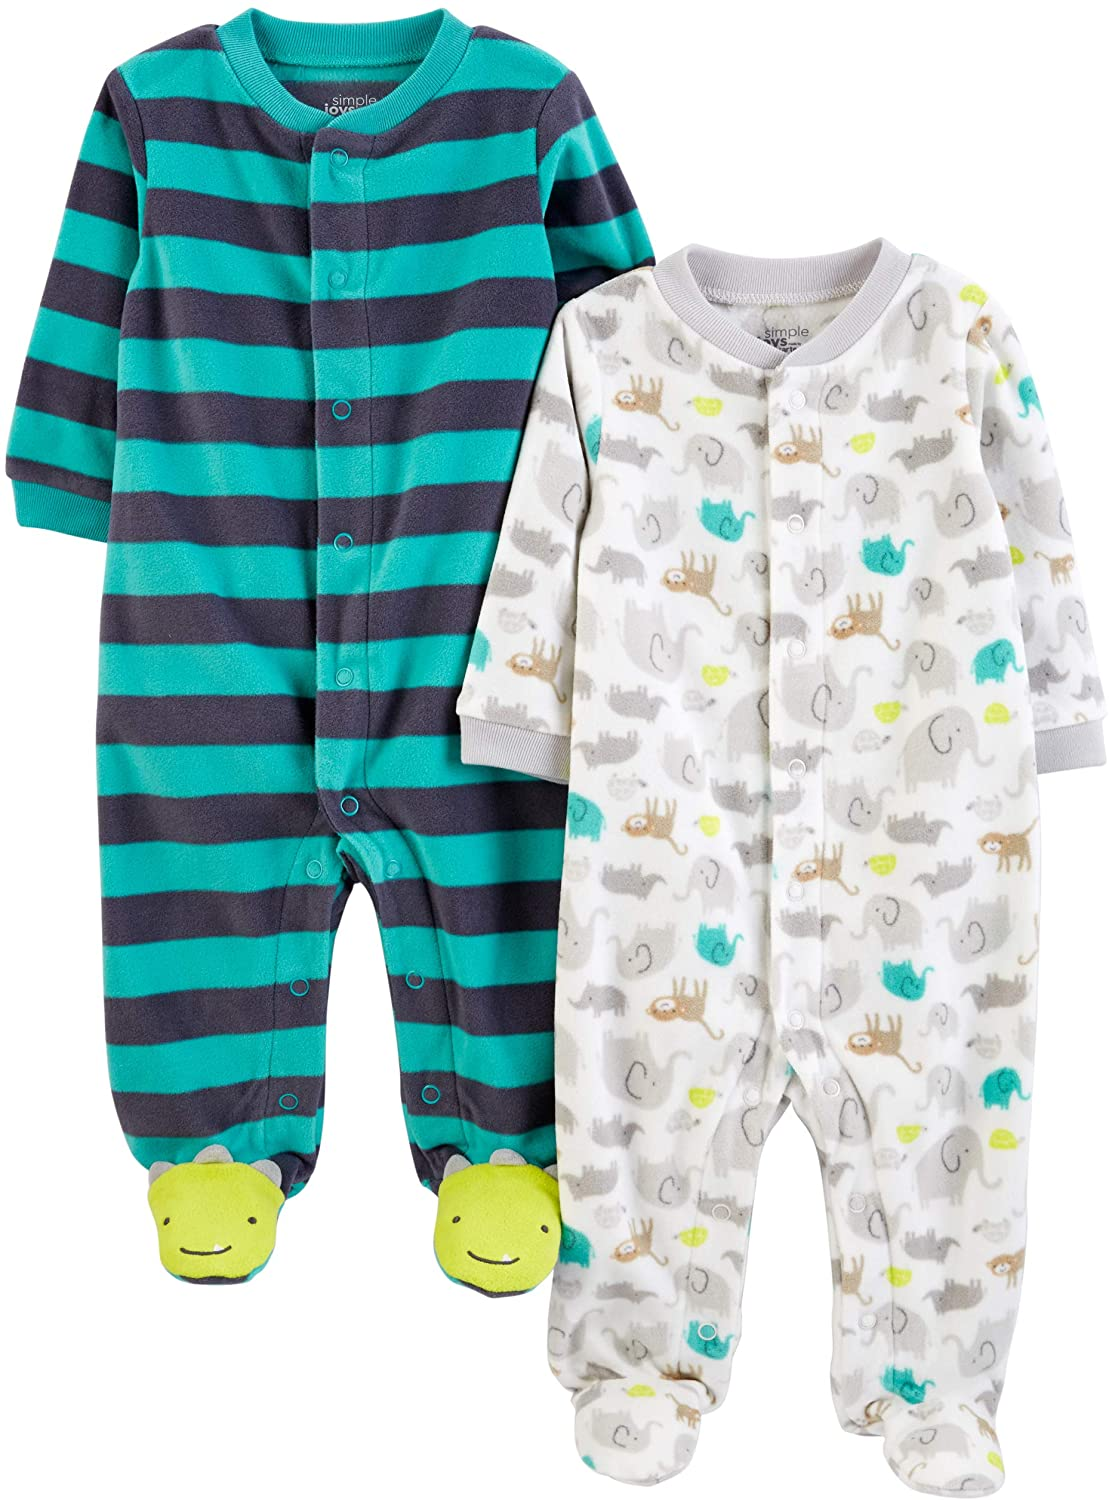 Simple Joys by Carters Baby-Boys 2-Pack Cotton Footed Sleep and Play